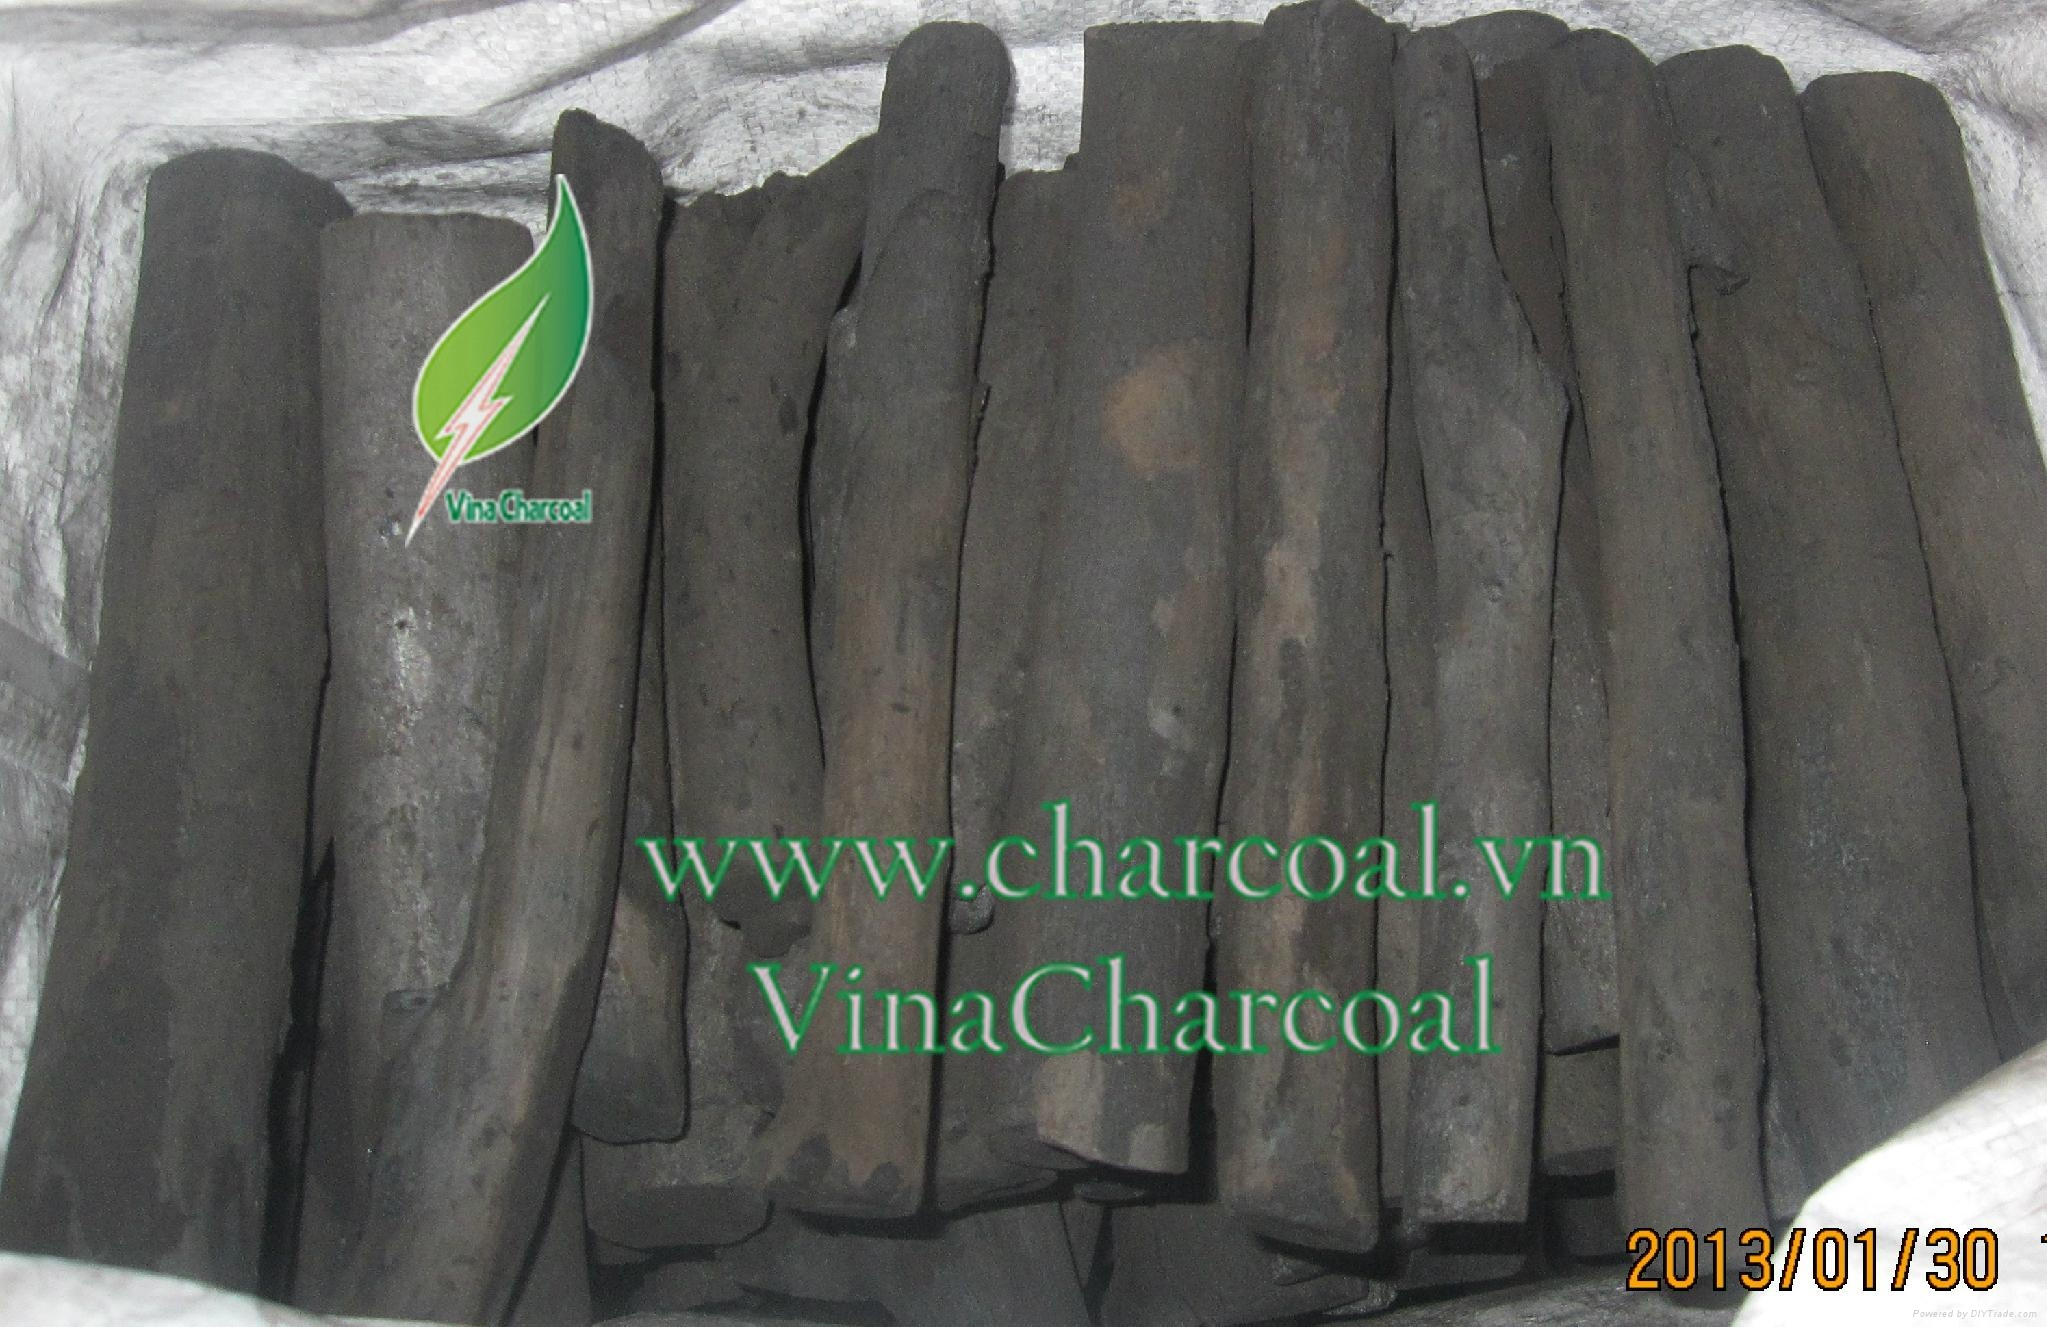 Good price long burned time quality wood charcoal pomelo charcoal 5